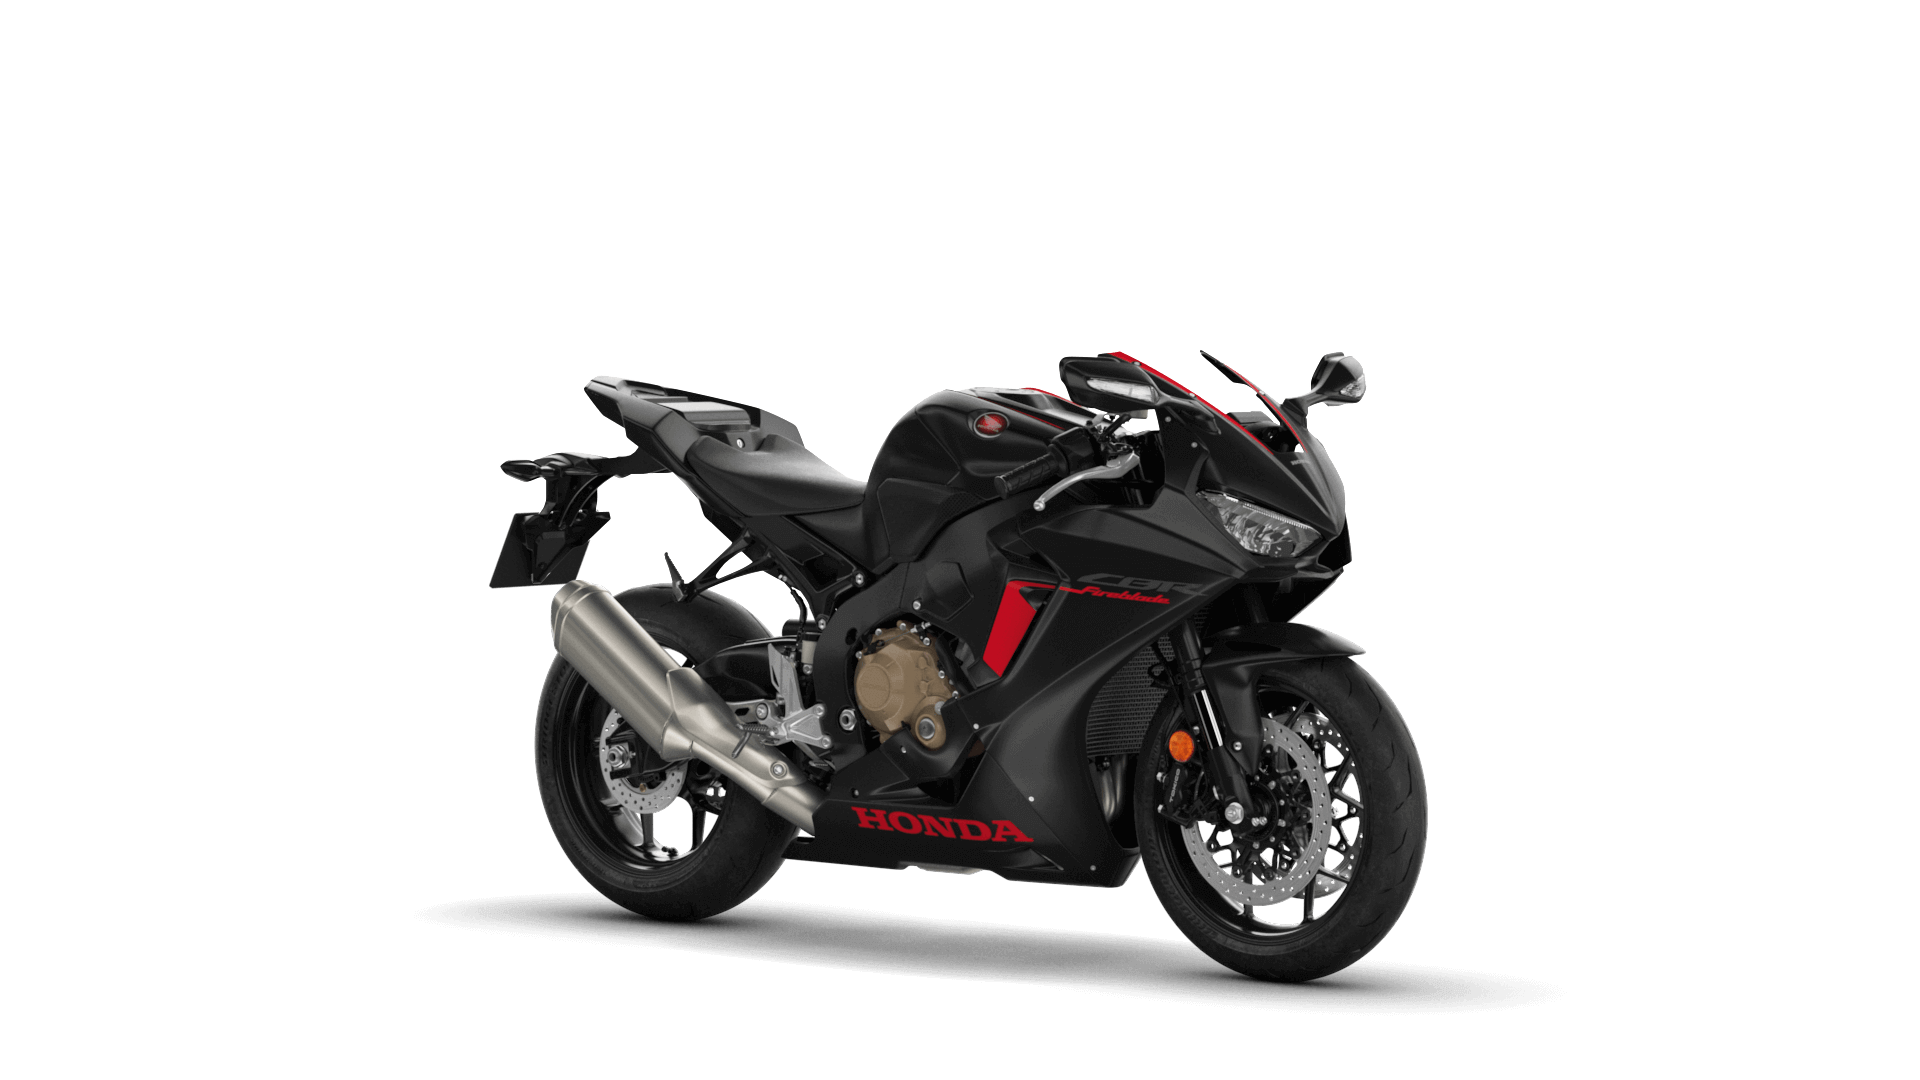 honda motorrad cbr 1000 rr motorrad bild idee. Black Bedroom Furniture Sets. Home Design Ideas